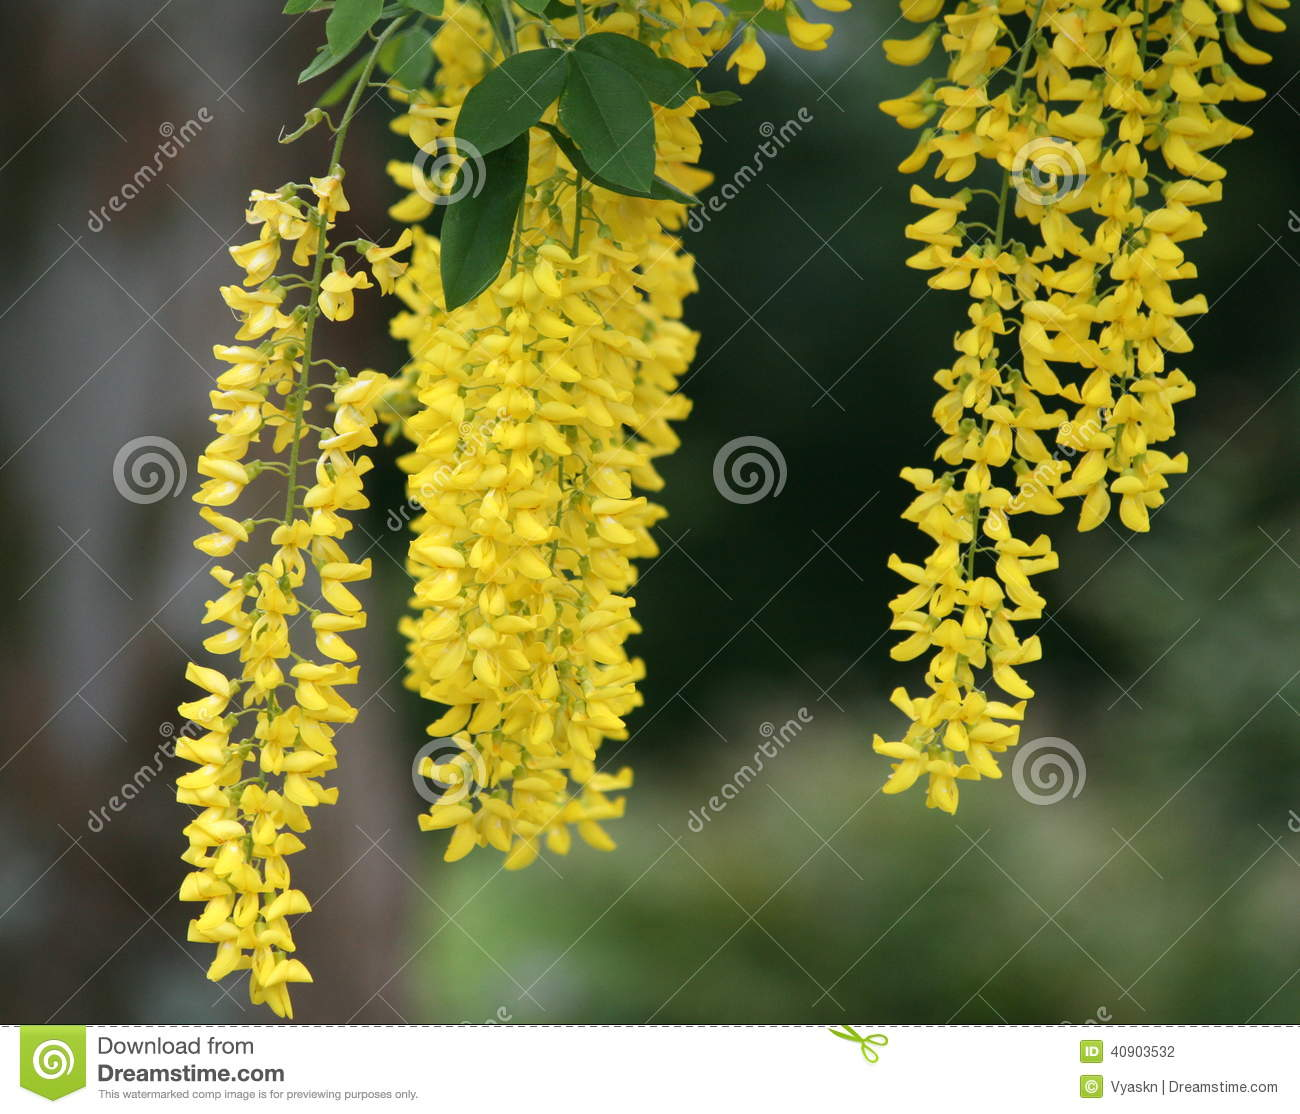 Yellow flowering trees elegant the brilliant yellow tabebuia trees amazing golden chain tree with long hanging yellow flower clusters with yellow flowering trees mightylinksfo Image collections